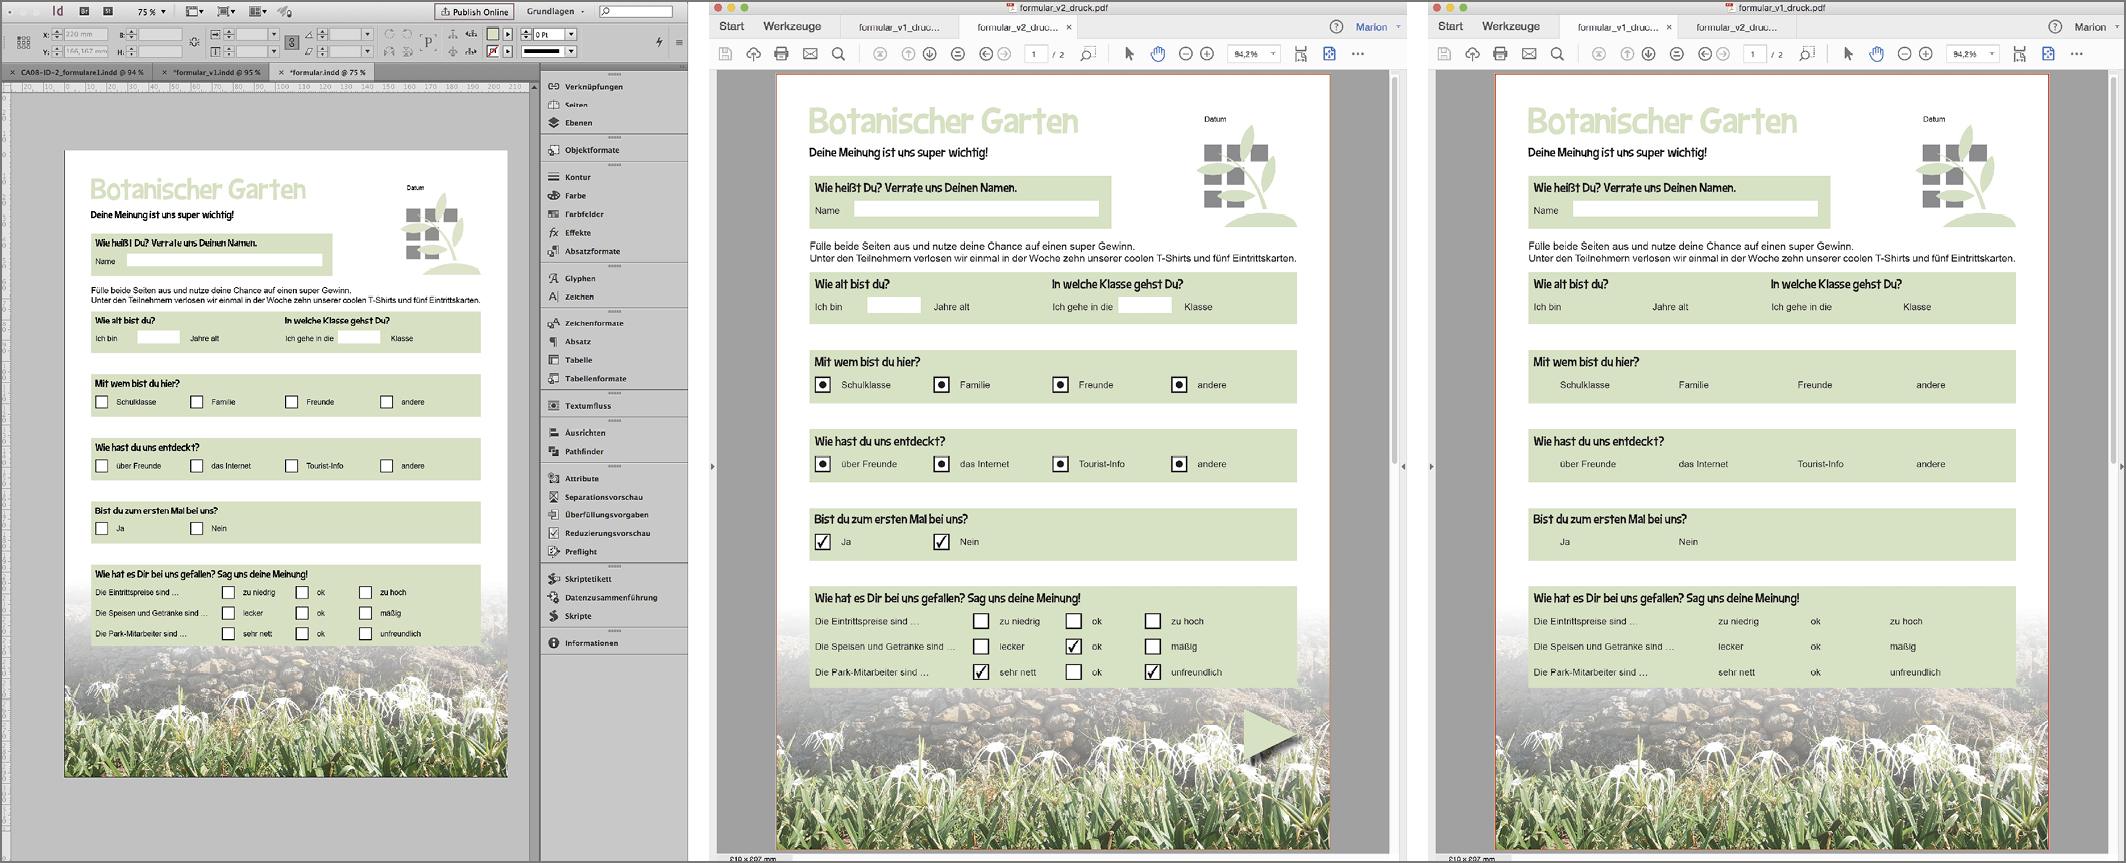 Fantastisch Indesign Bestellformular Vorlage Ideen - Entry Level ...